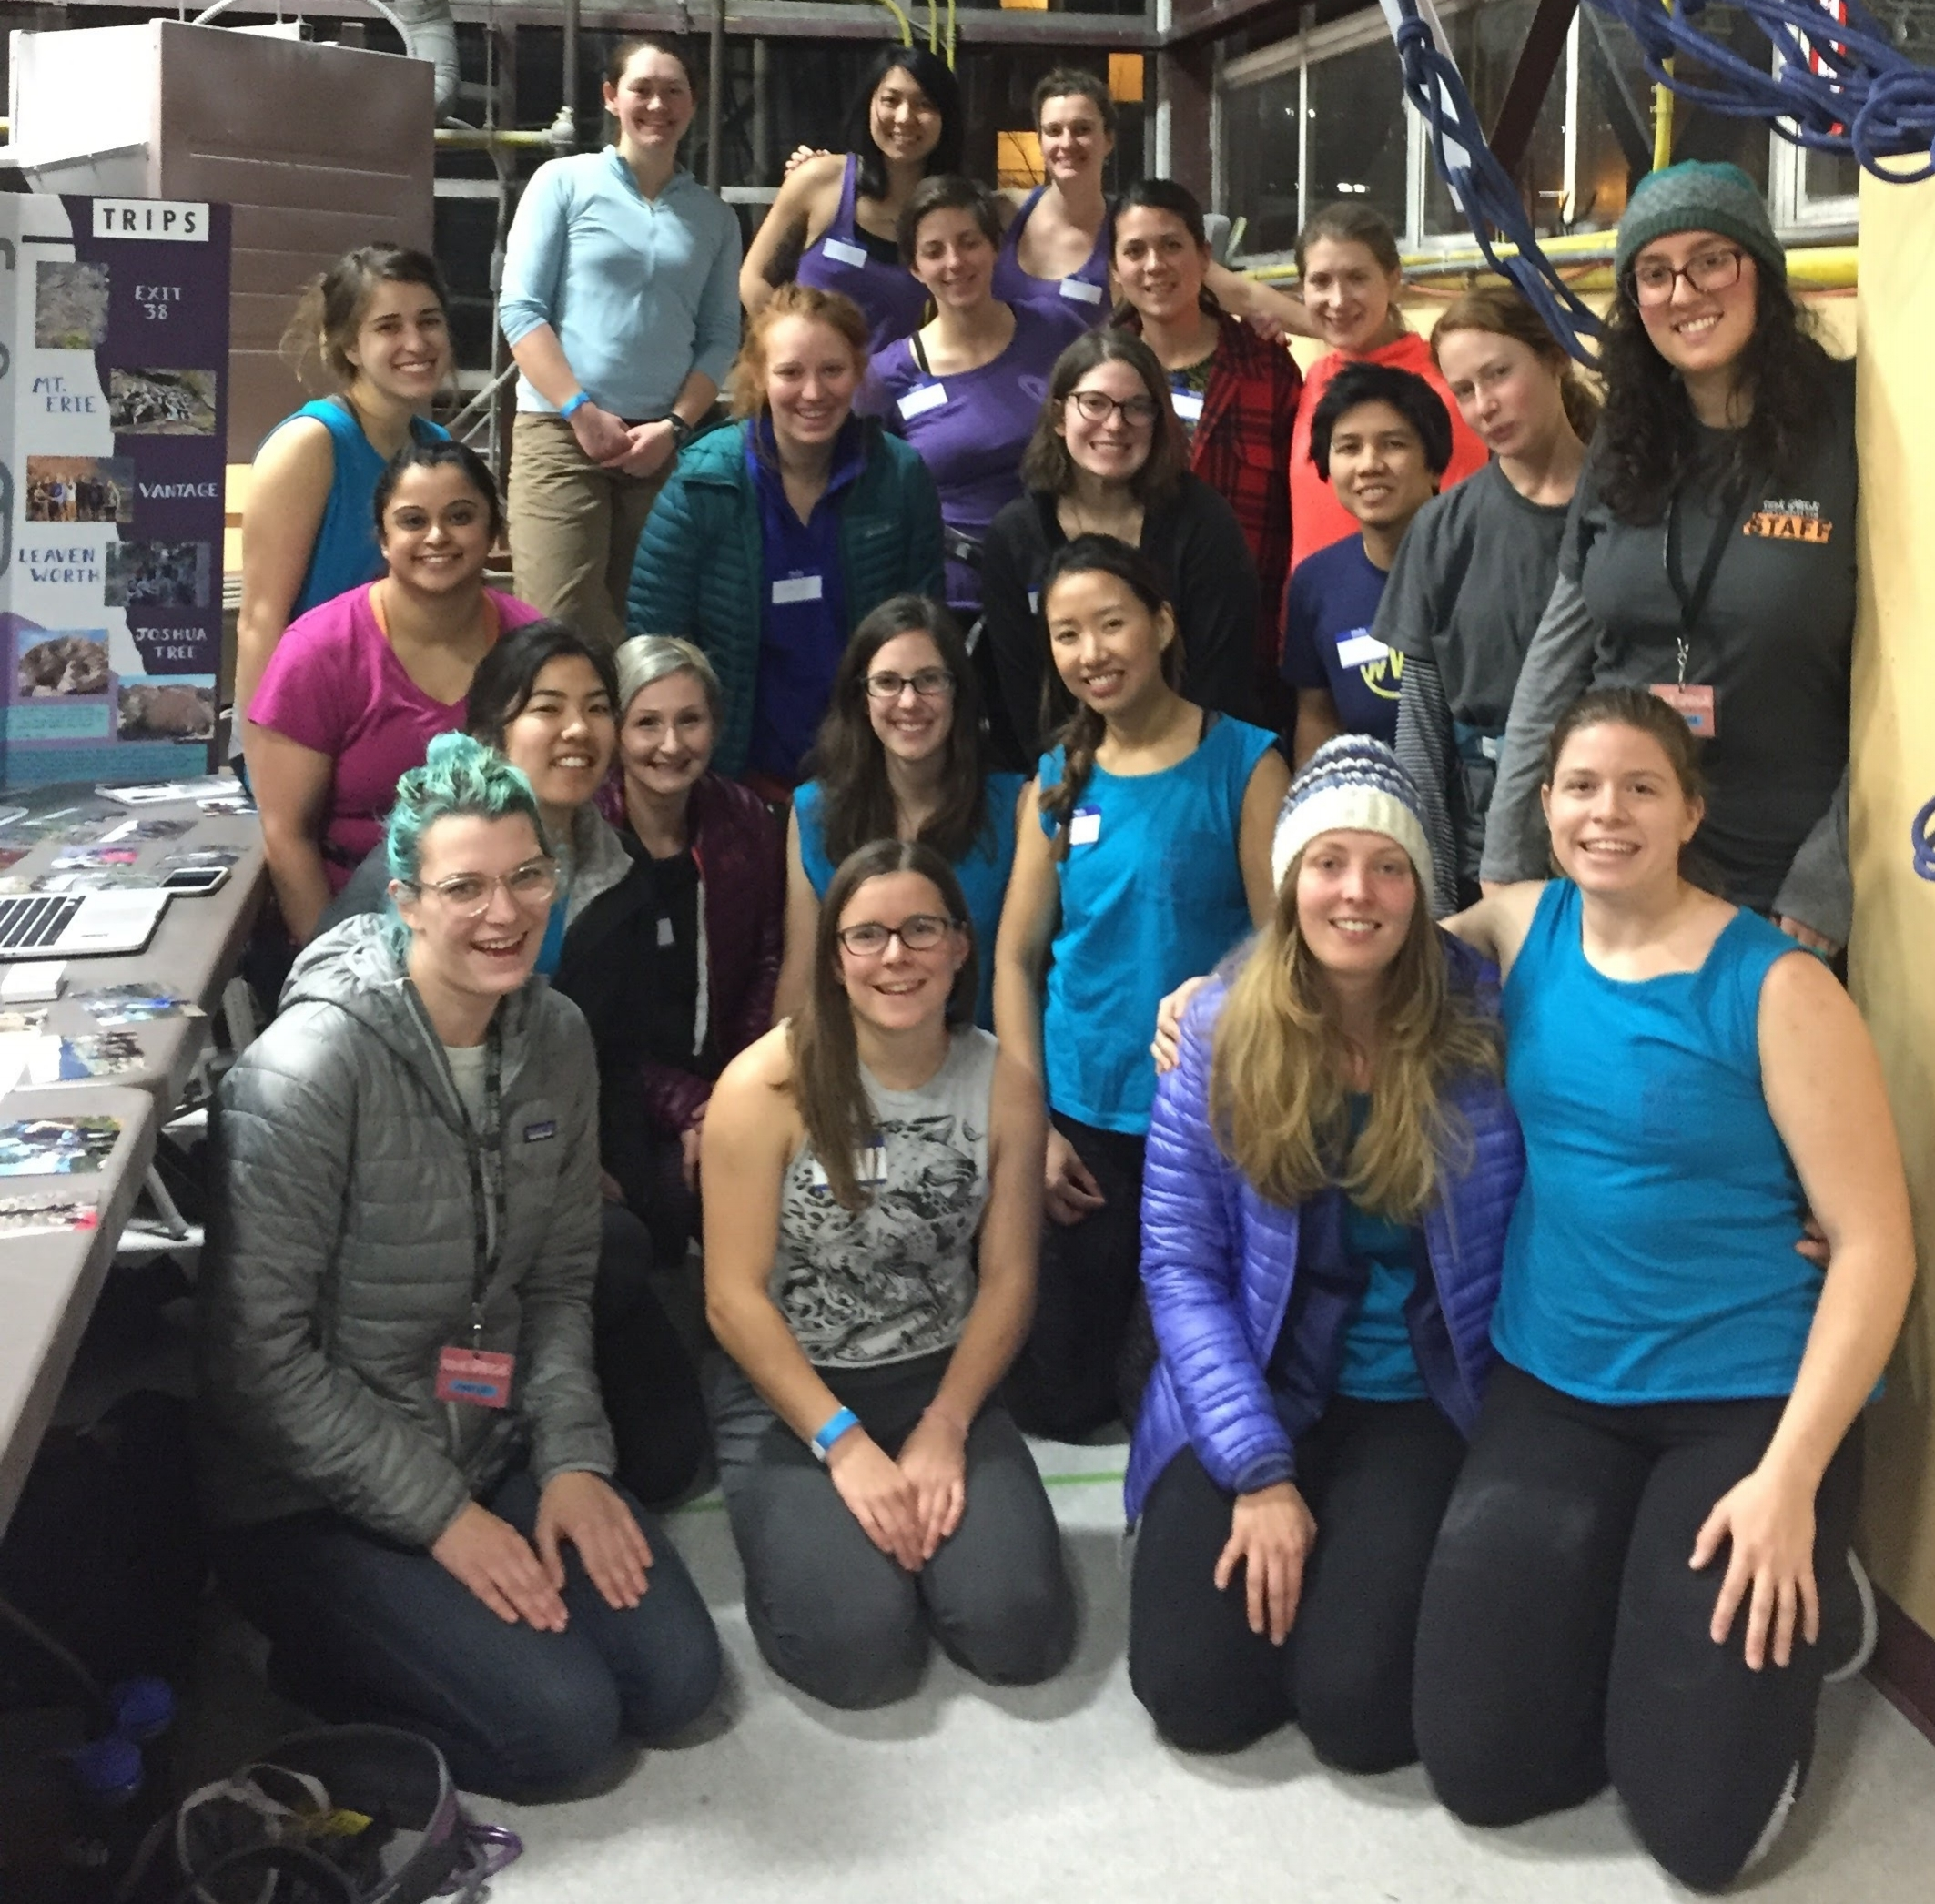 The group of volunteers from Never Stop Moving, Alpenglow Collective and She Rocks joining together before embarking downstairs to belay new climbers and provide bouldering guidance to motivate more women to feel comfortable and excited about climbing in a gym.